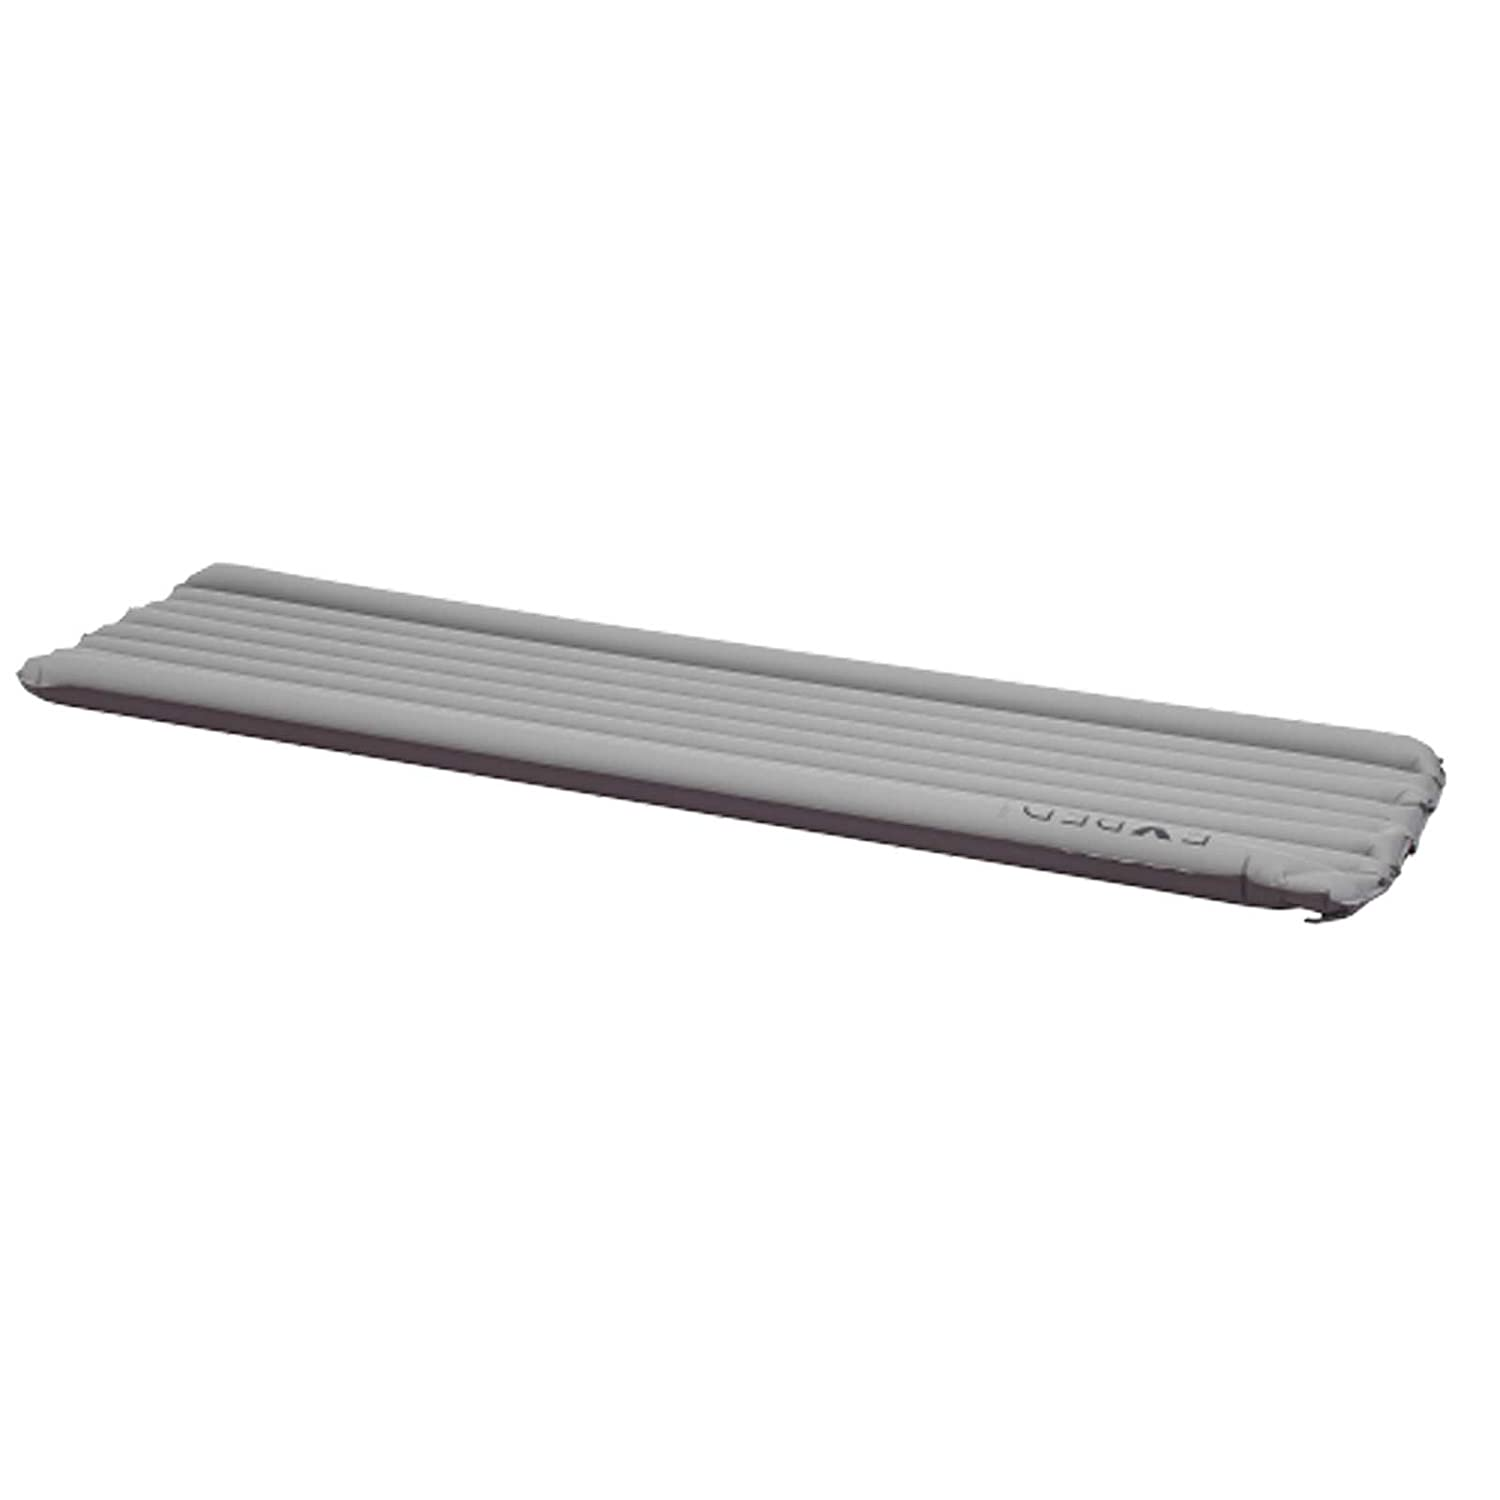 Exped DownMat Lite 5 LW grey, 5LW